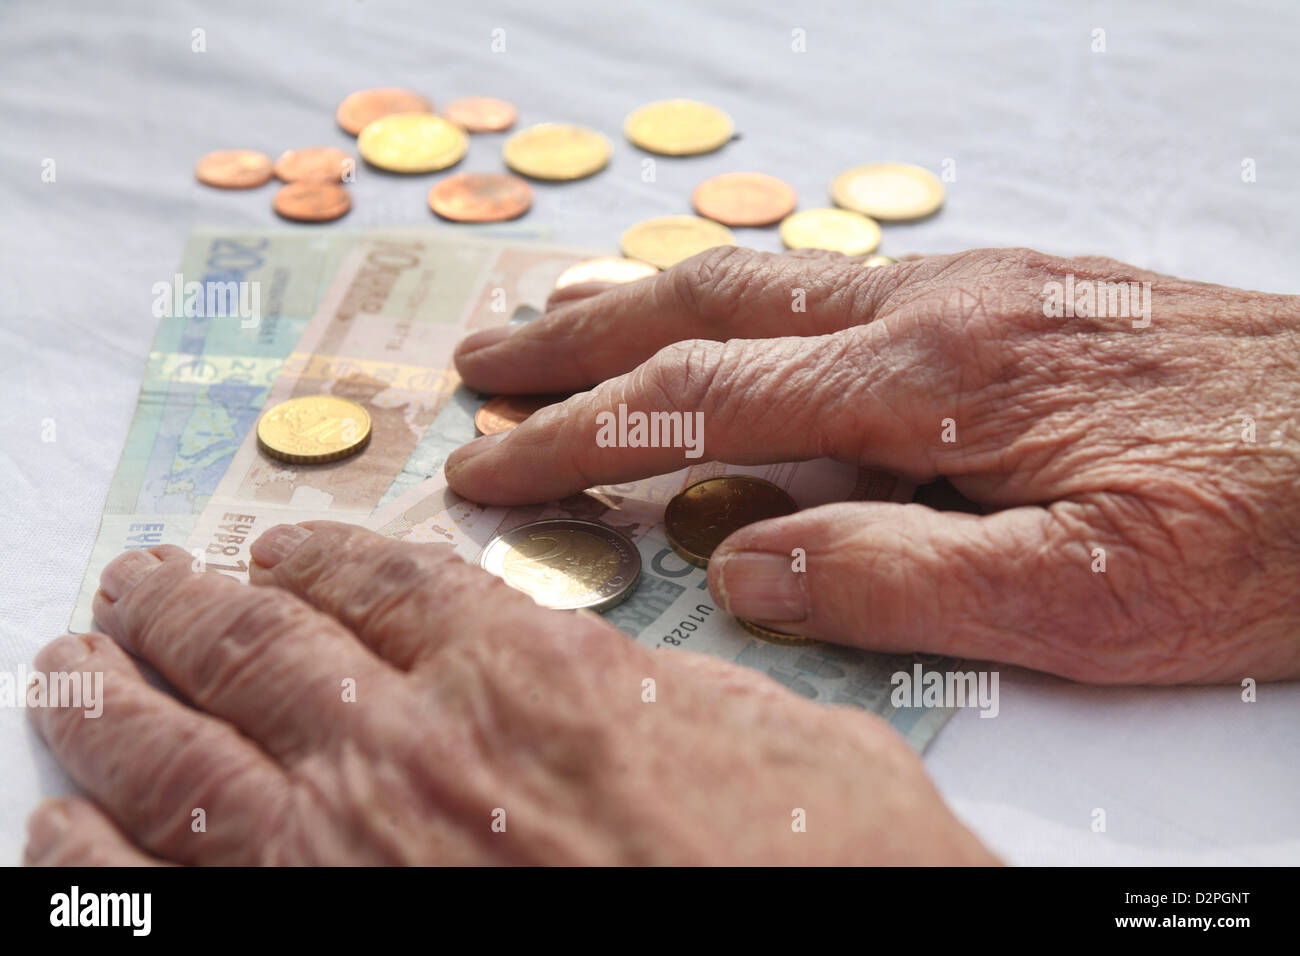 Berlin, Germany, the hands are a pensioner on money - Stock Image